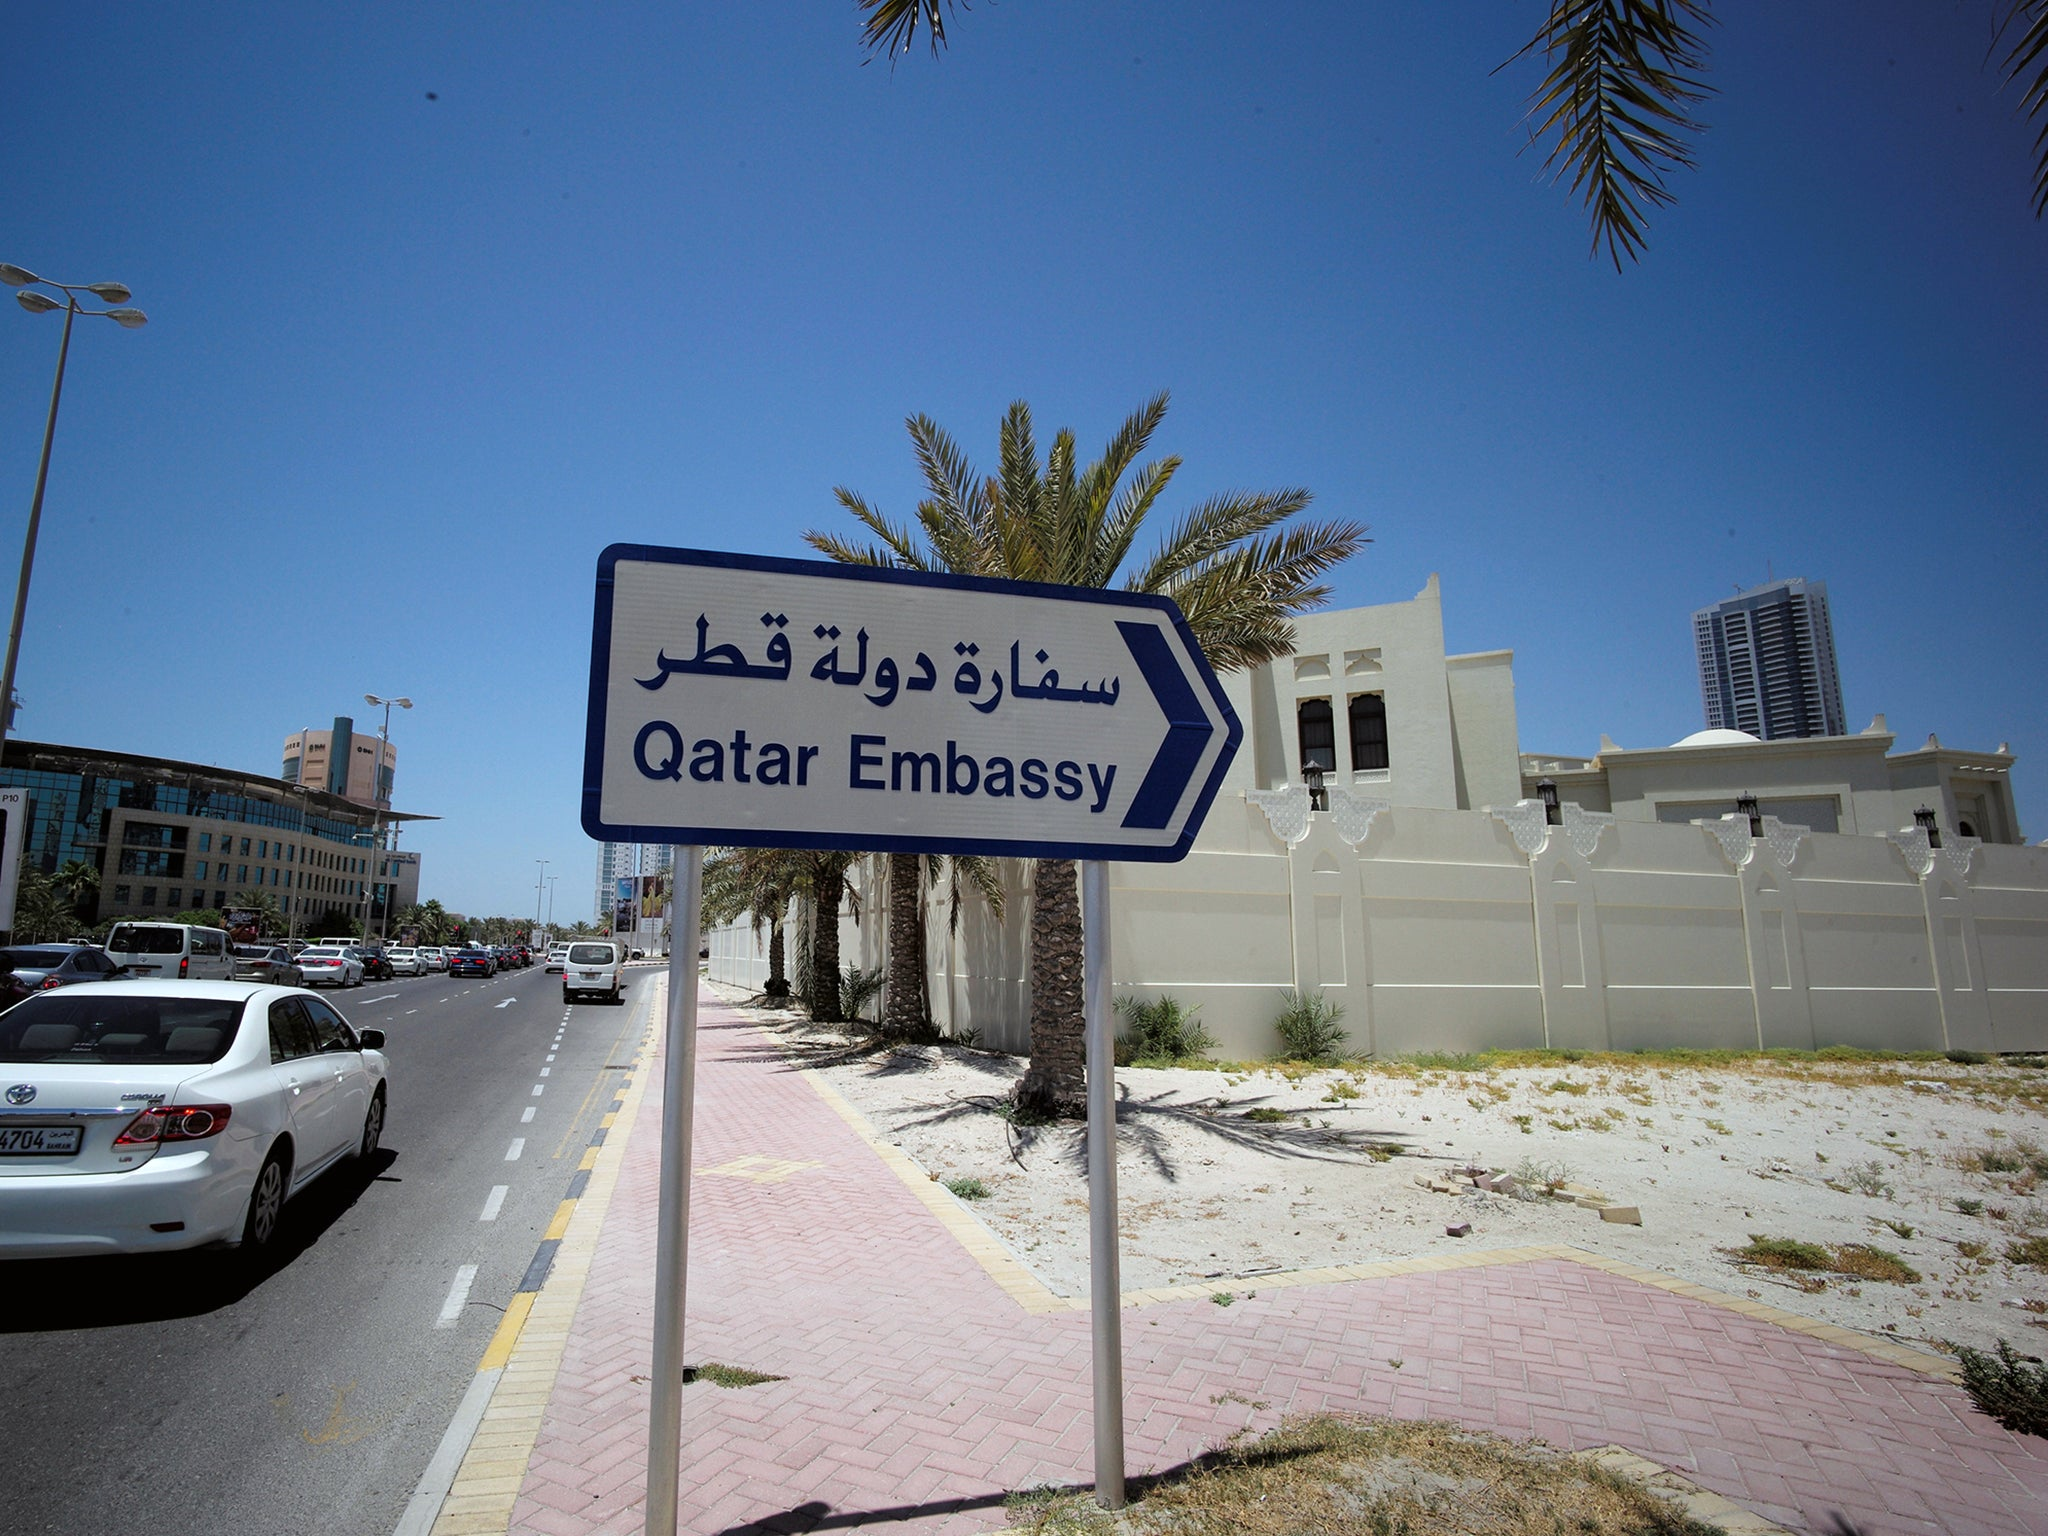 This is the real story behind the economic crisis unfolding in Qatar